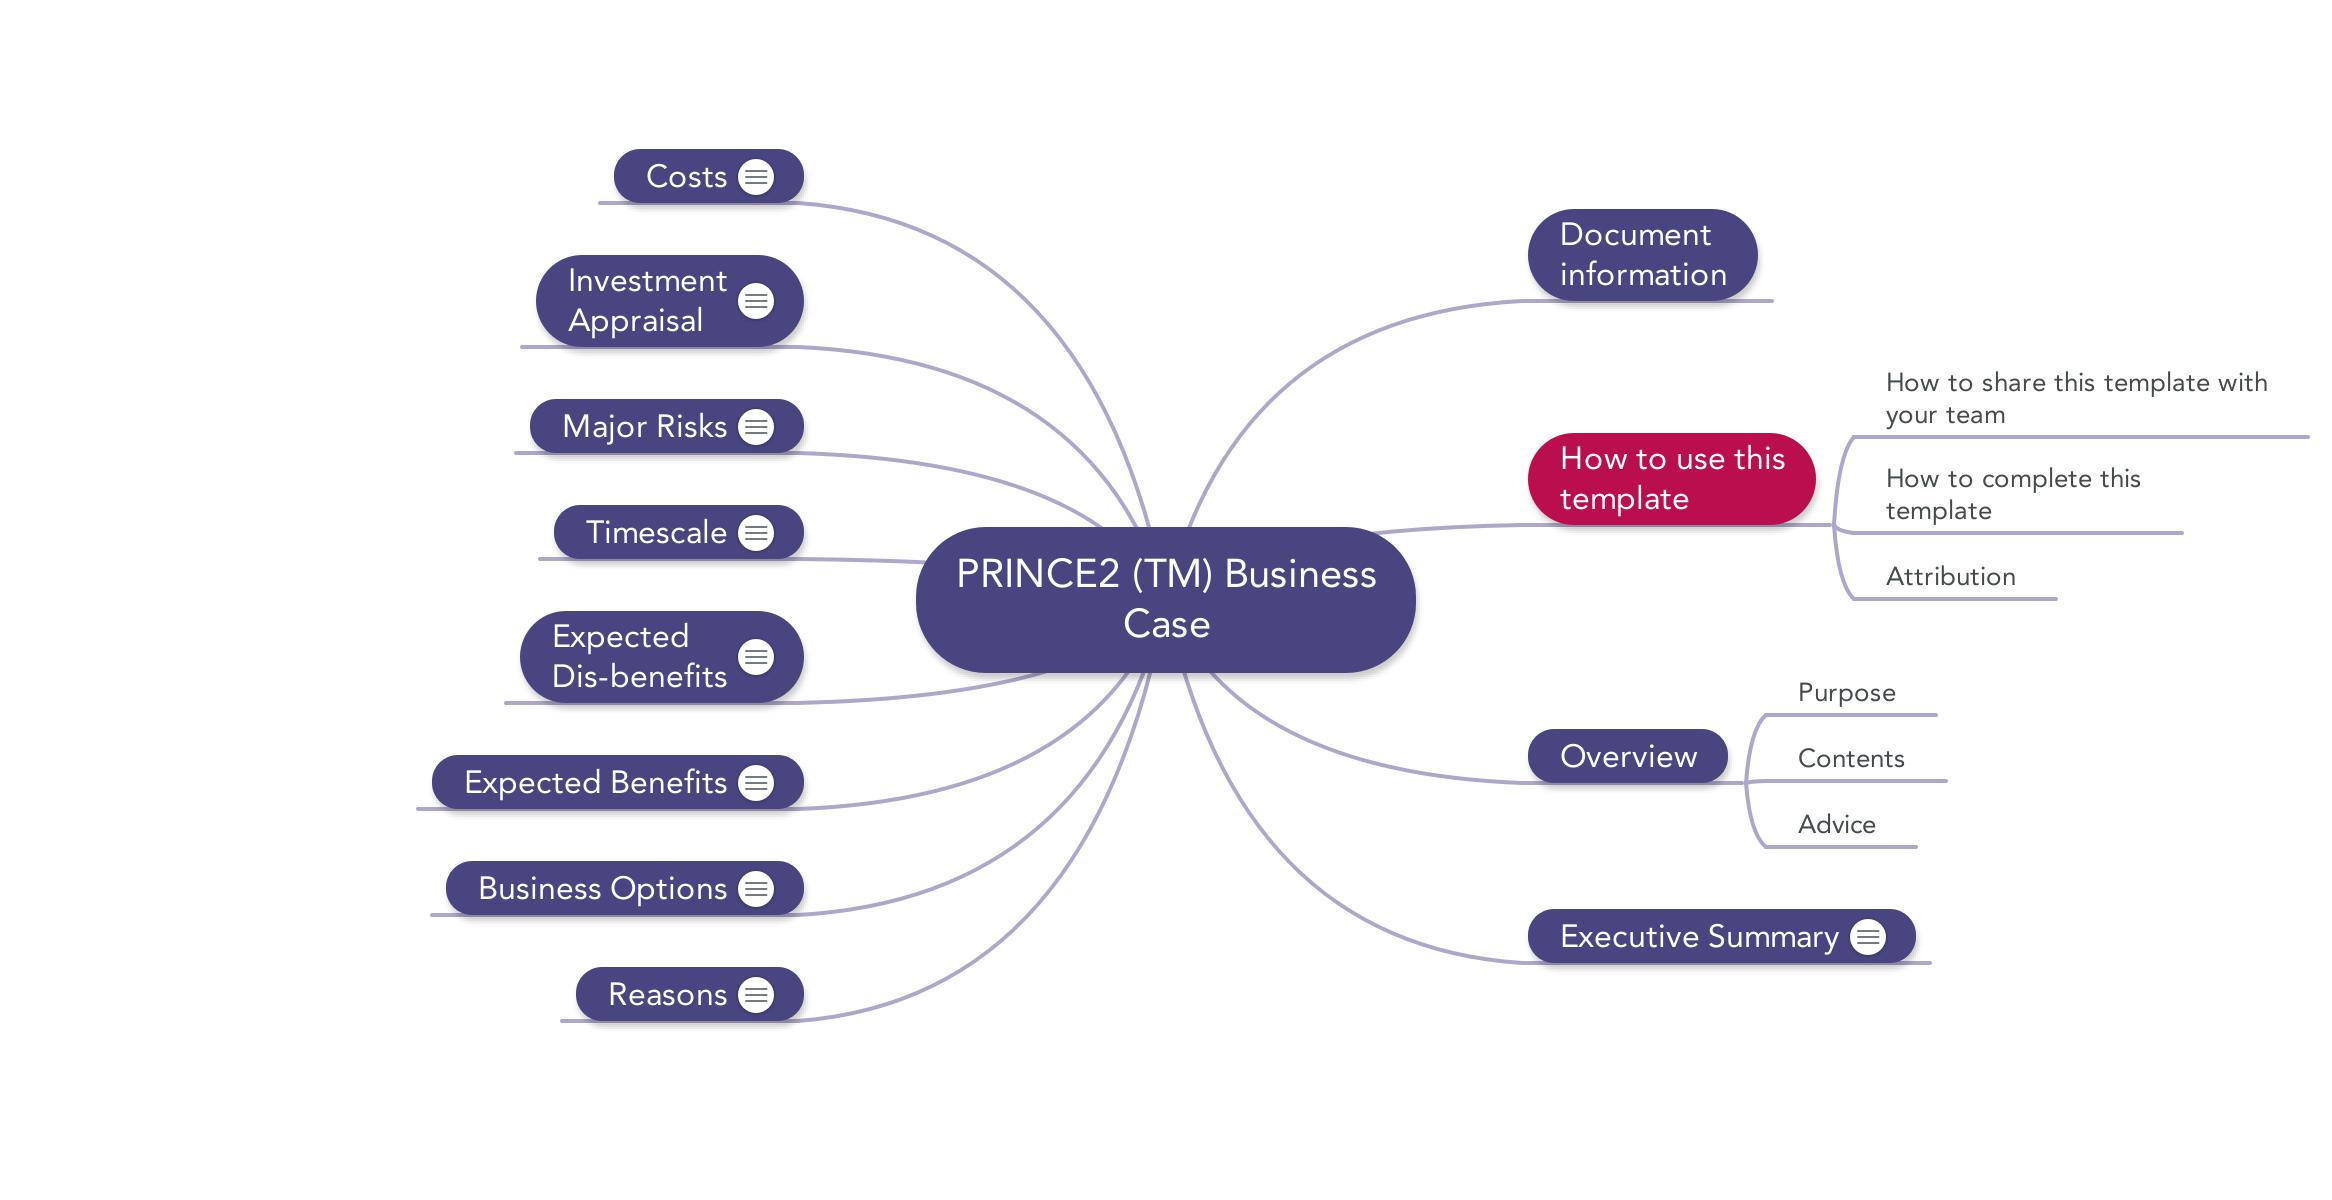 Prince2 Business Case Download template